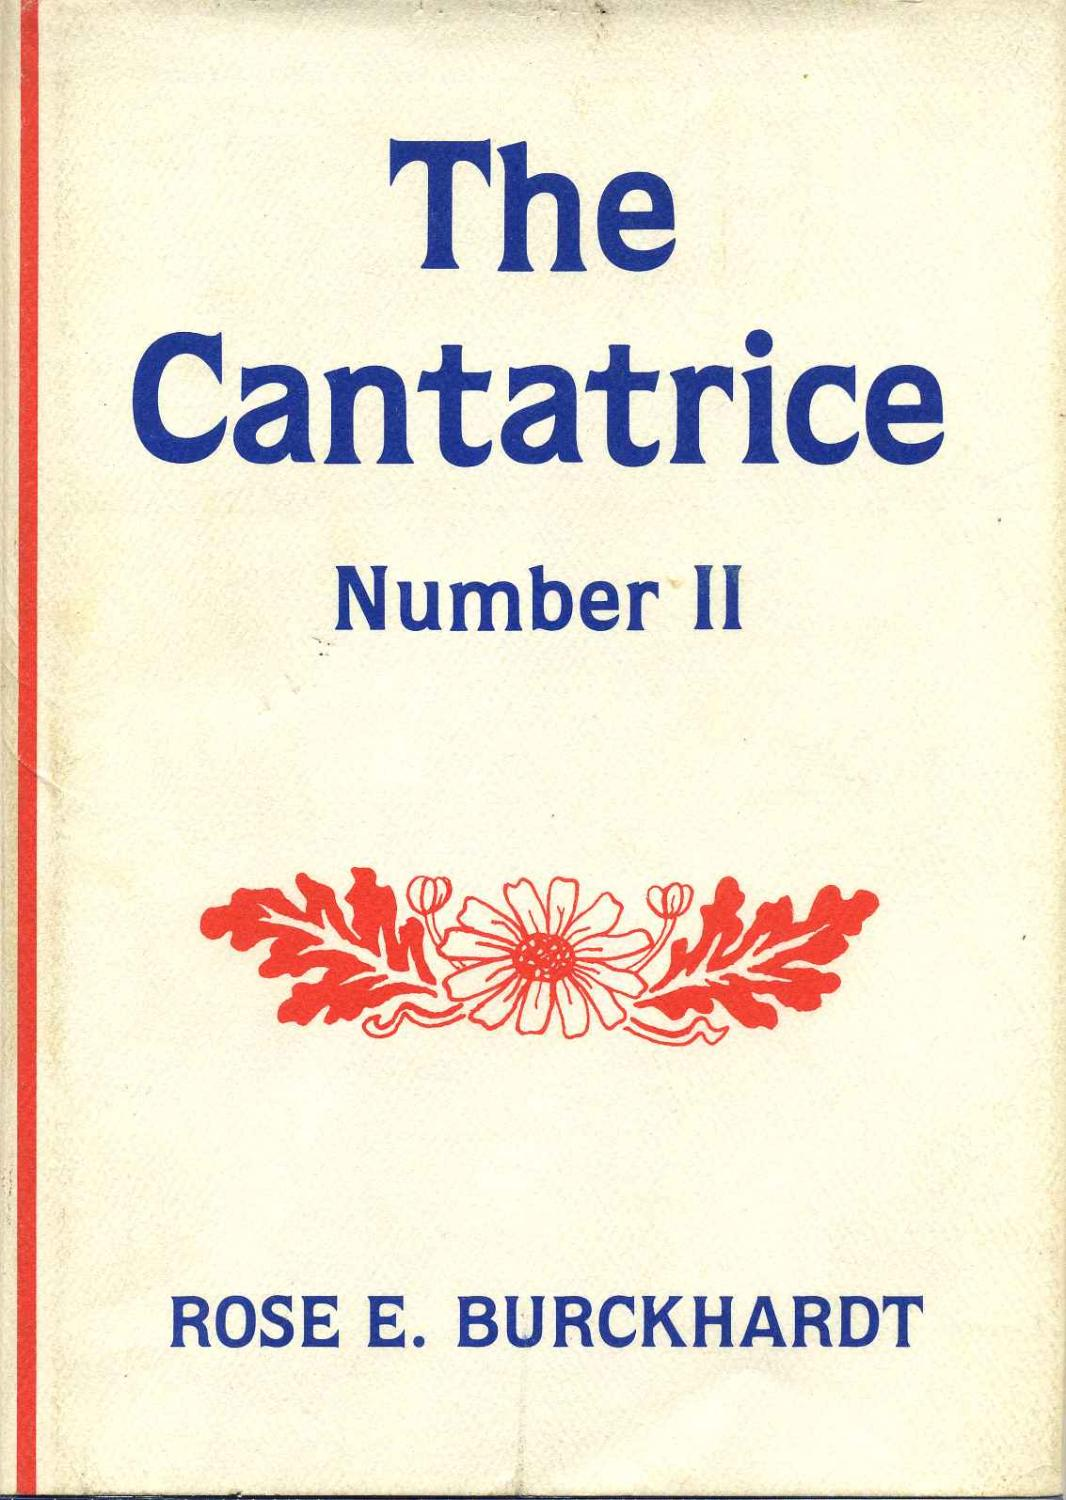 THE CANTATRICE, NUMBER II.: Burckhardt, Rose E.